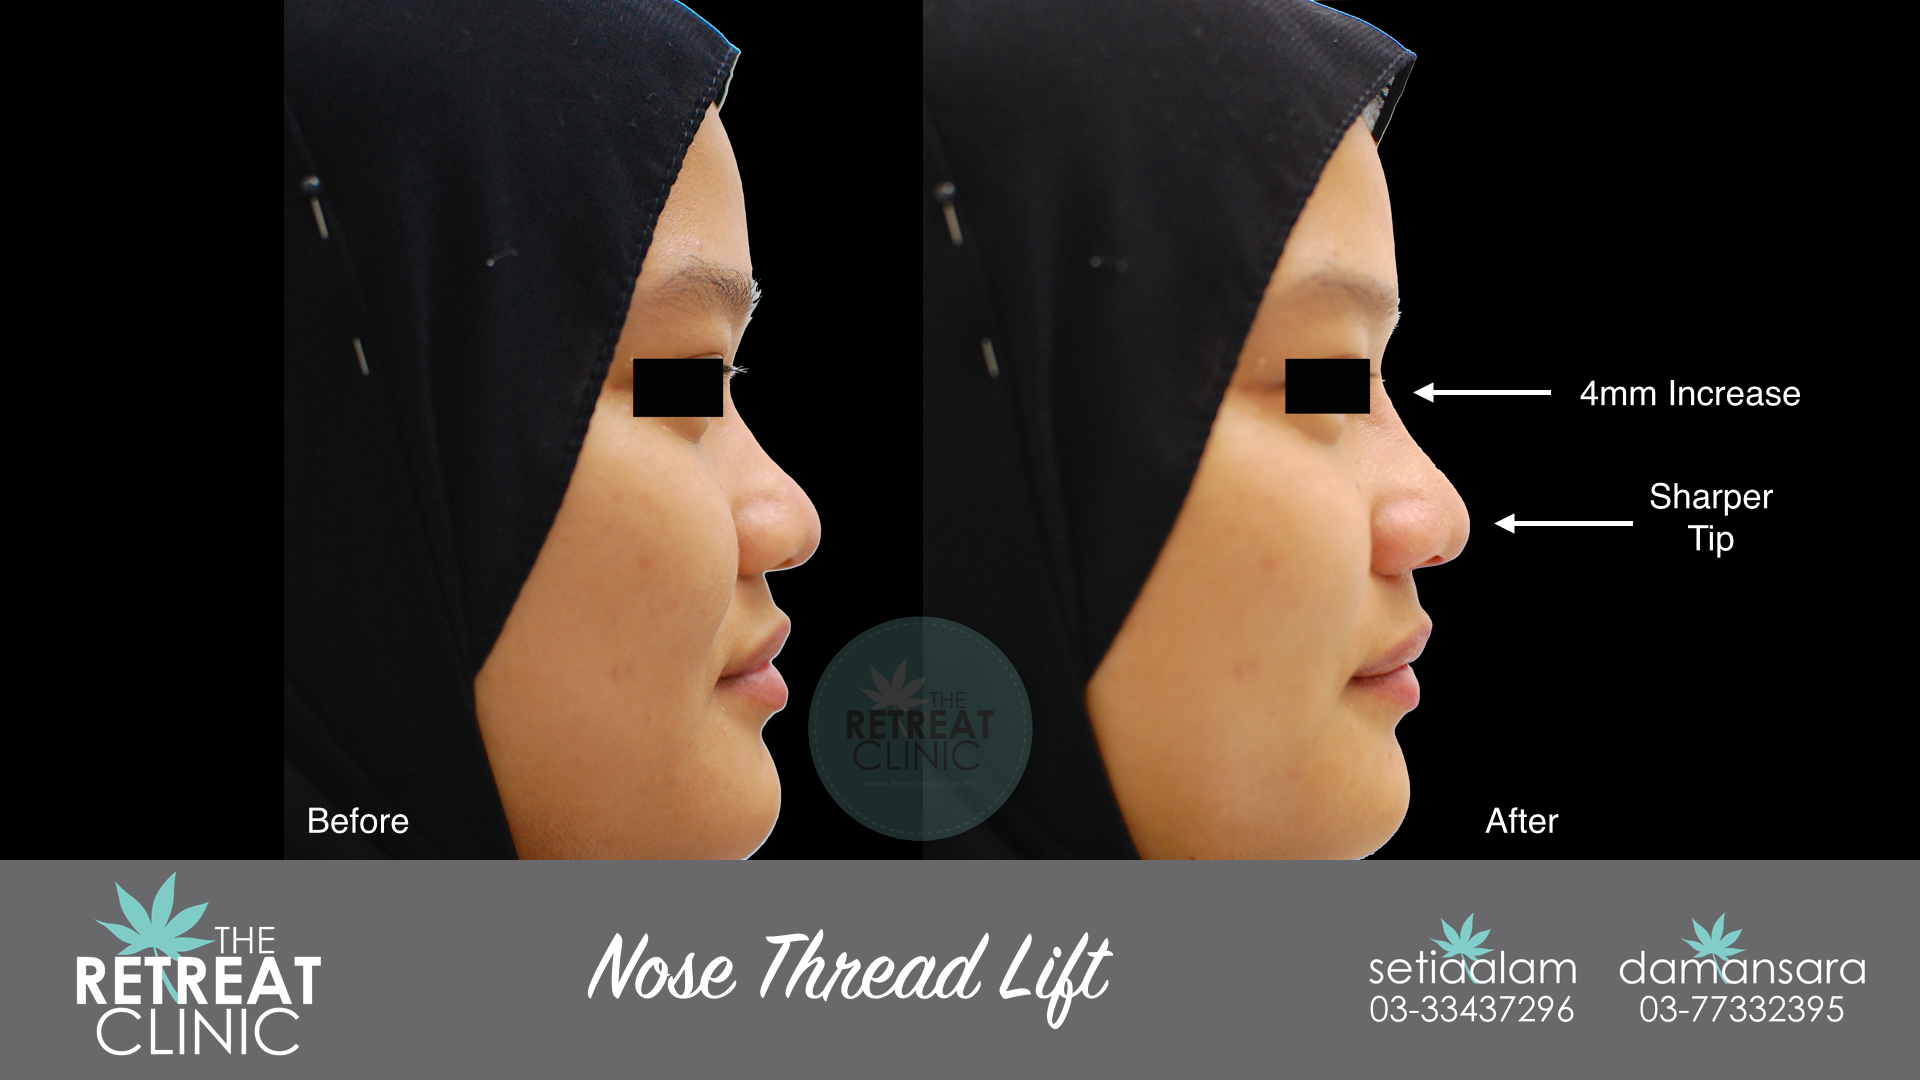 Nose Thread Lift - Fast, Effective, Safe! - The Retreat Clinic